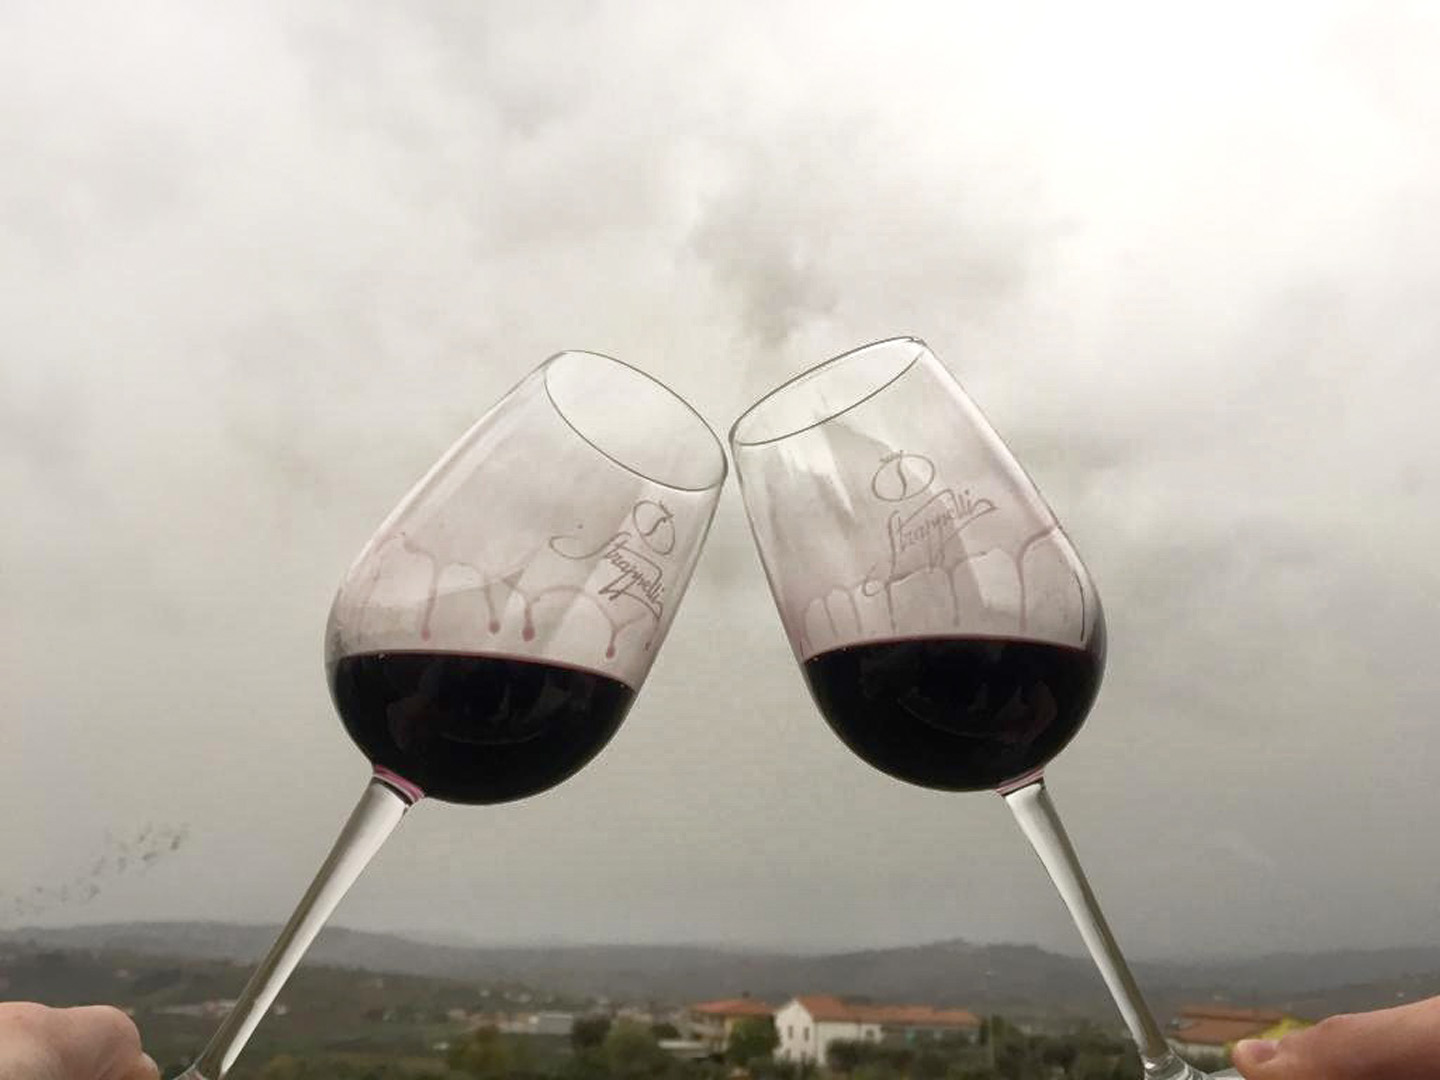 Tasting between mountain and see